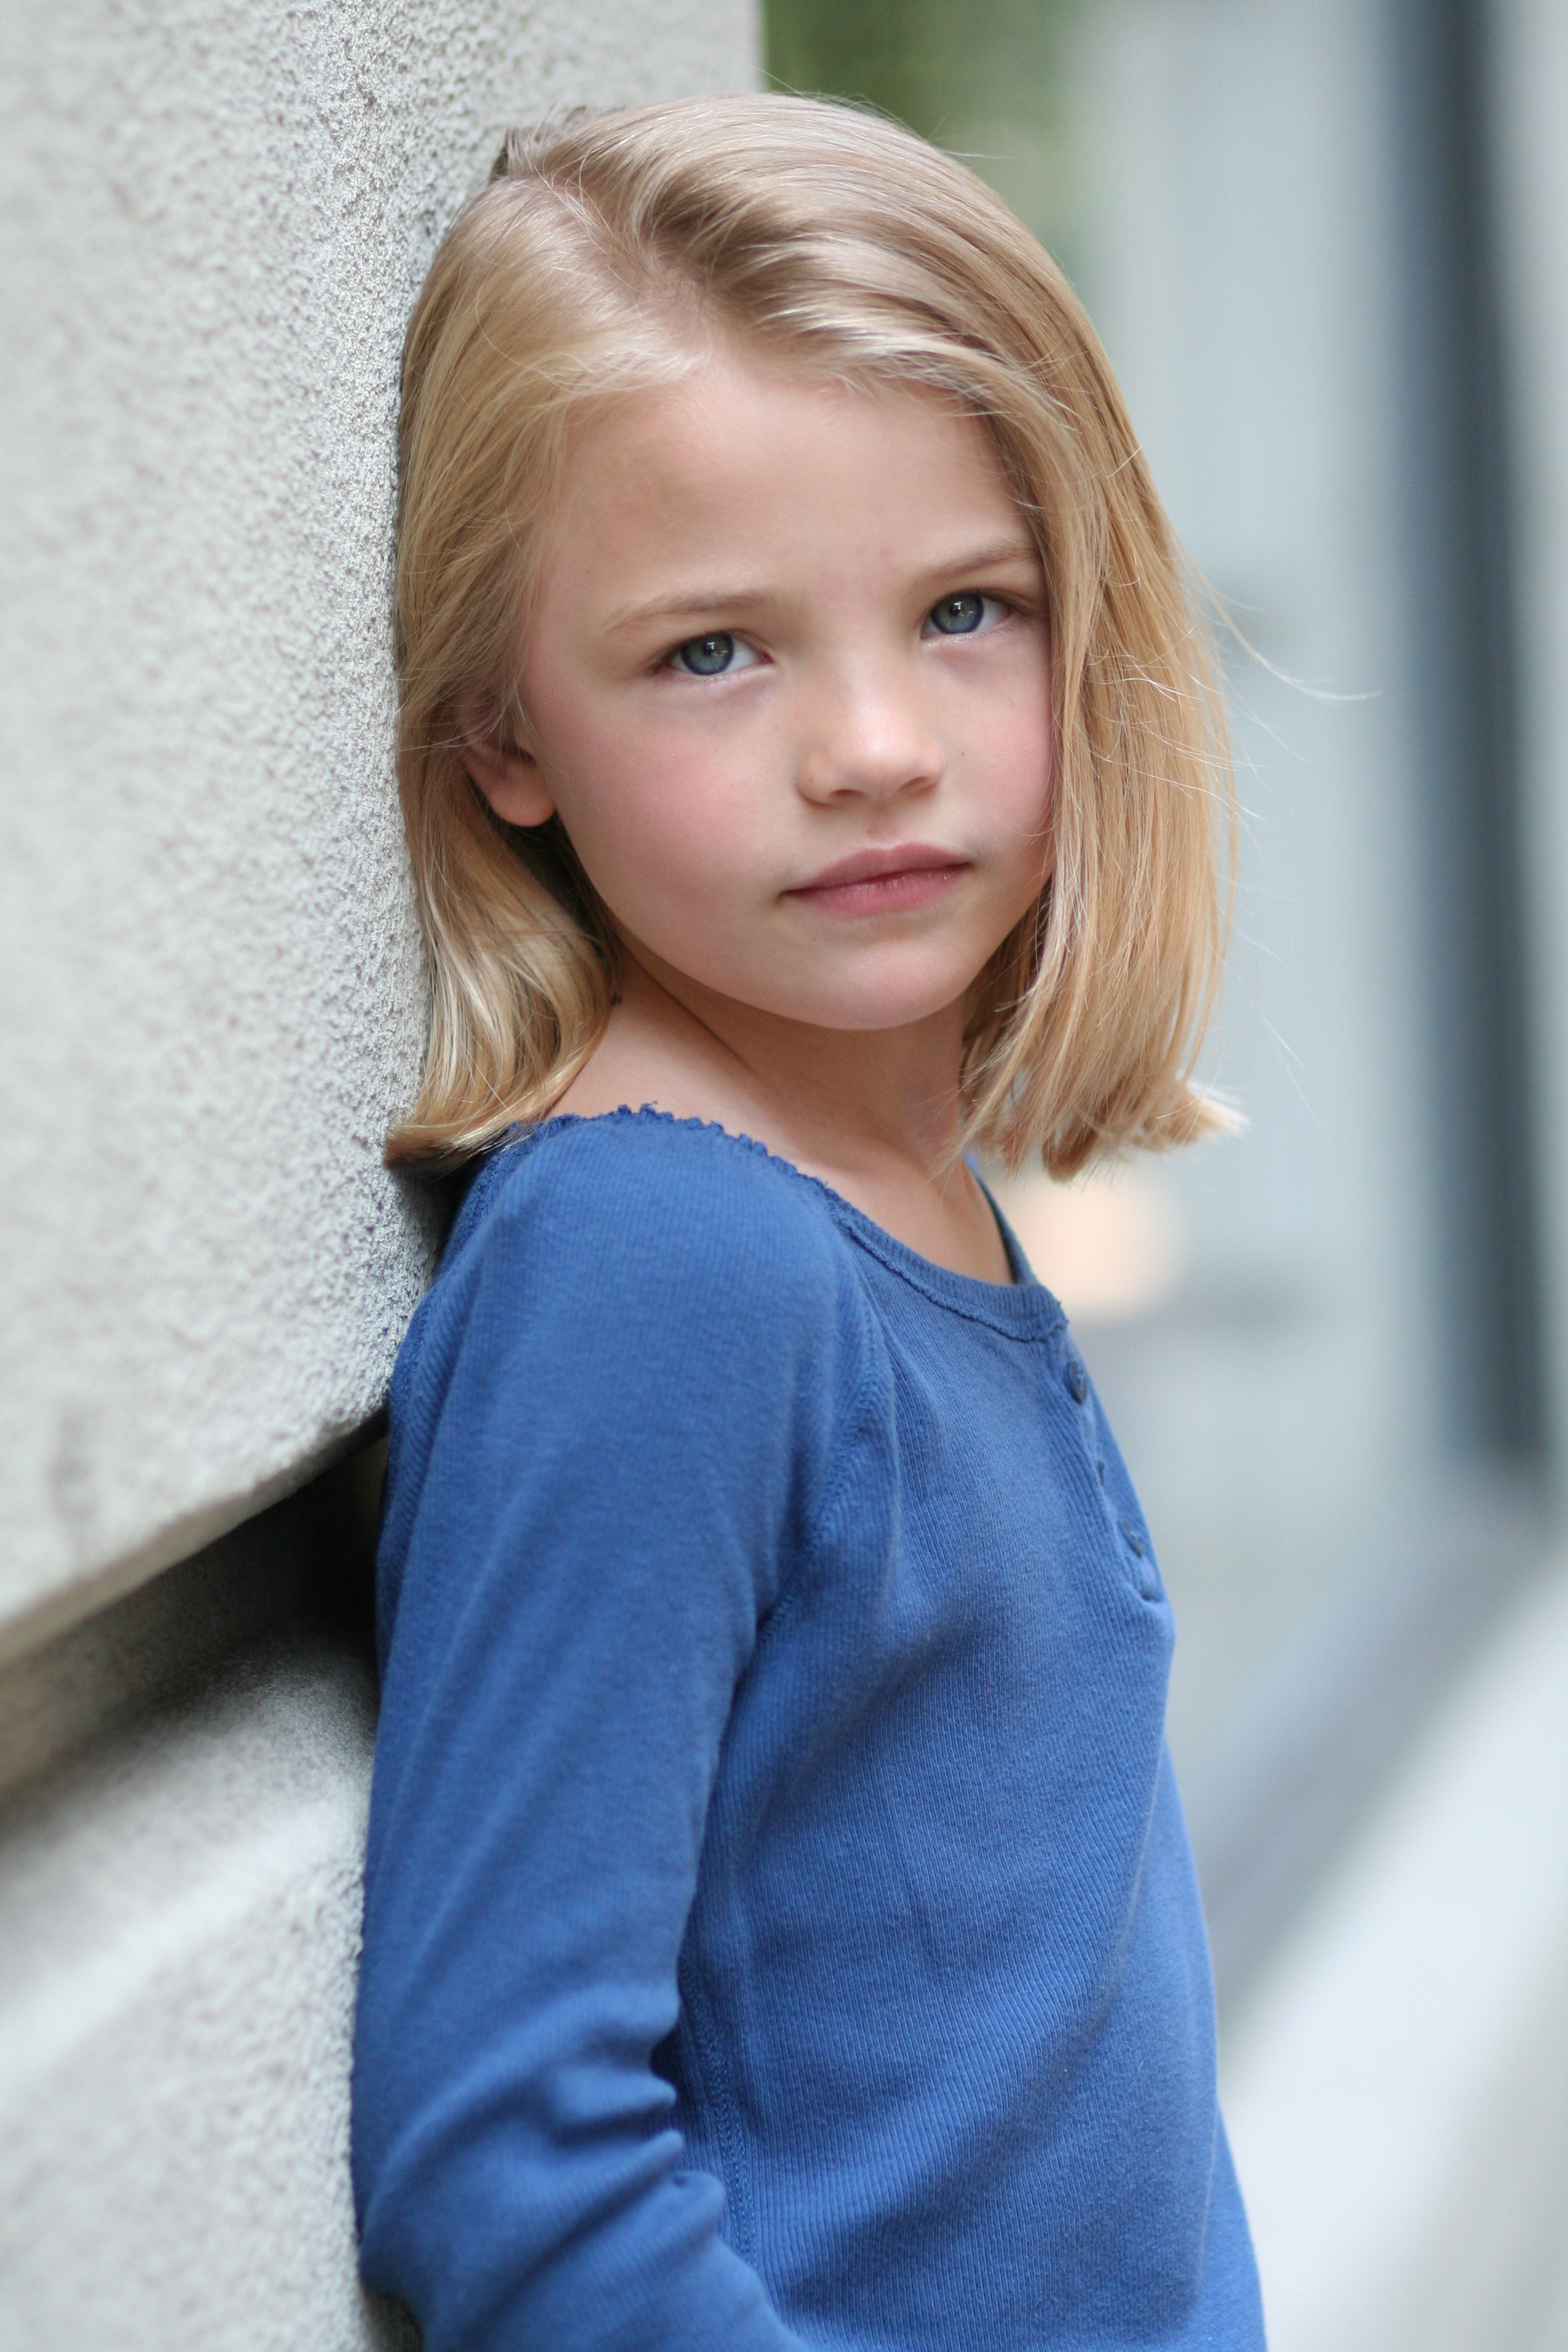 Child Modeling Pictures http://dbpedia.org/resource/Child_model